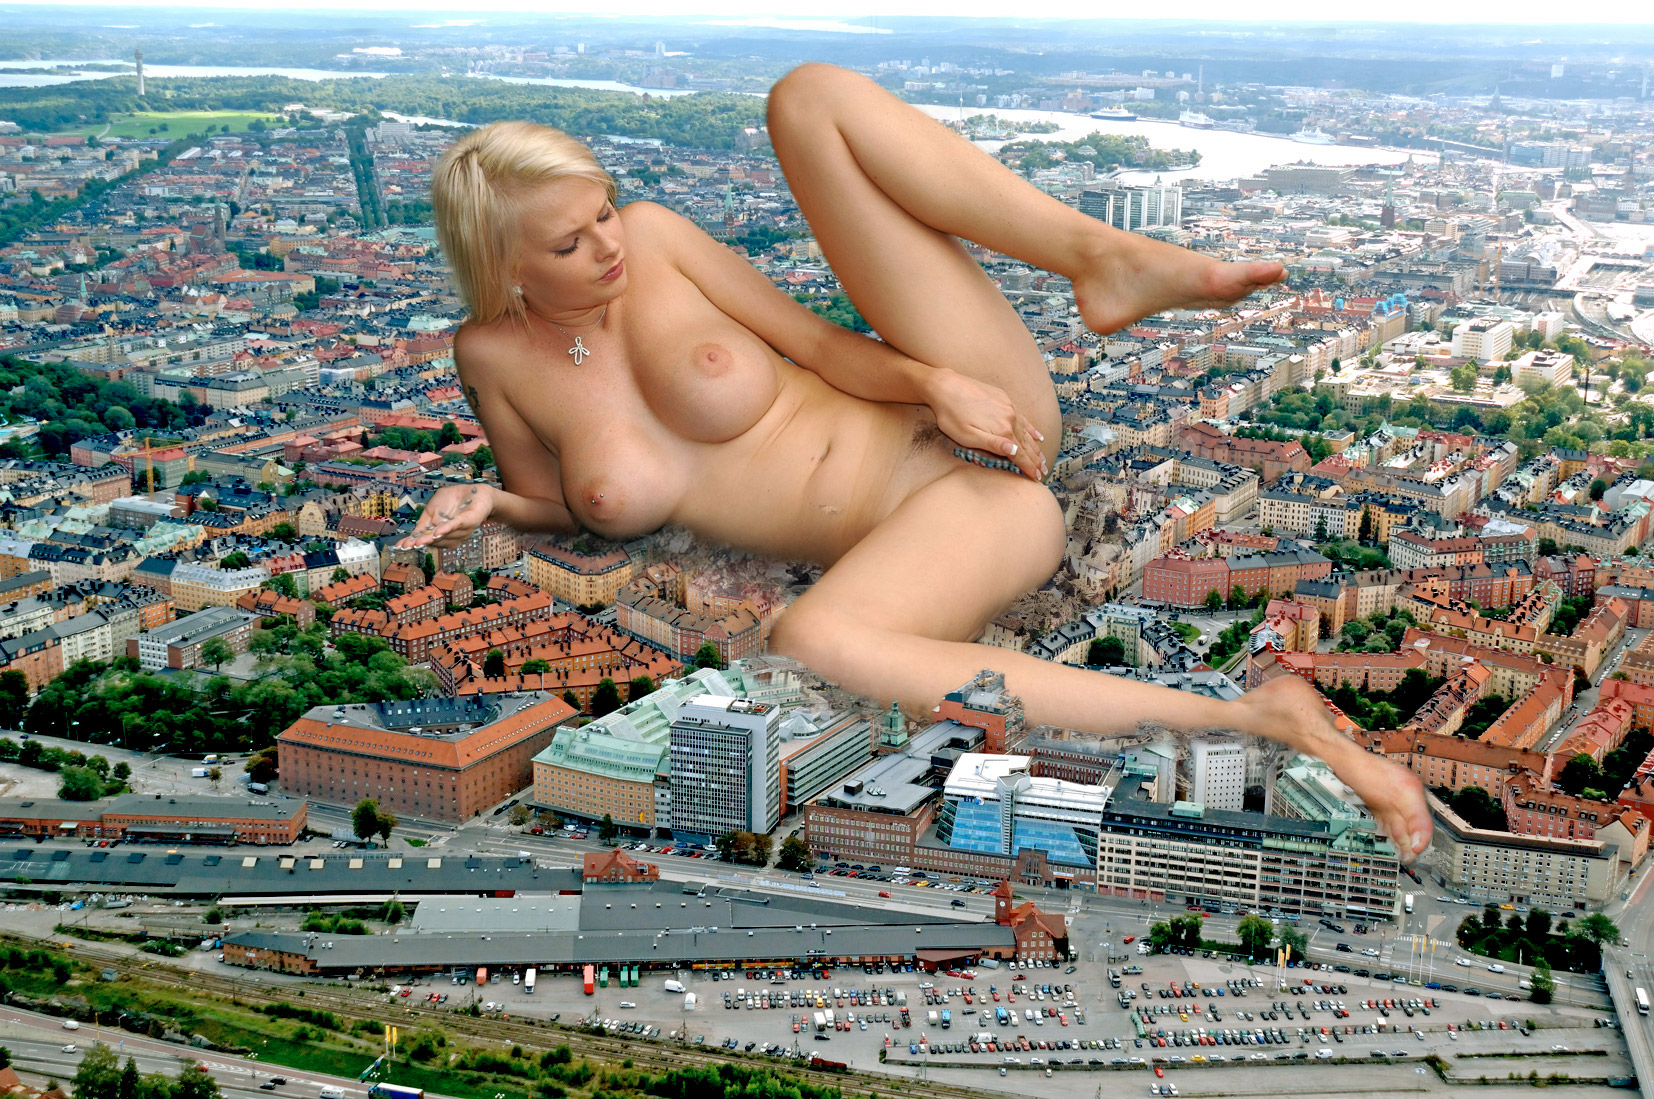 giantess city